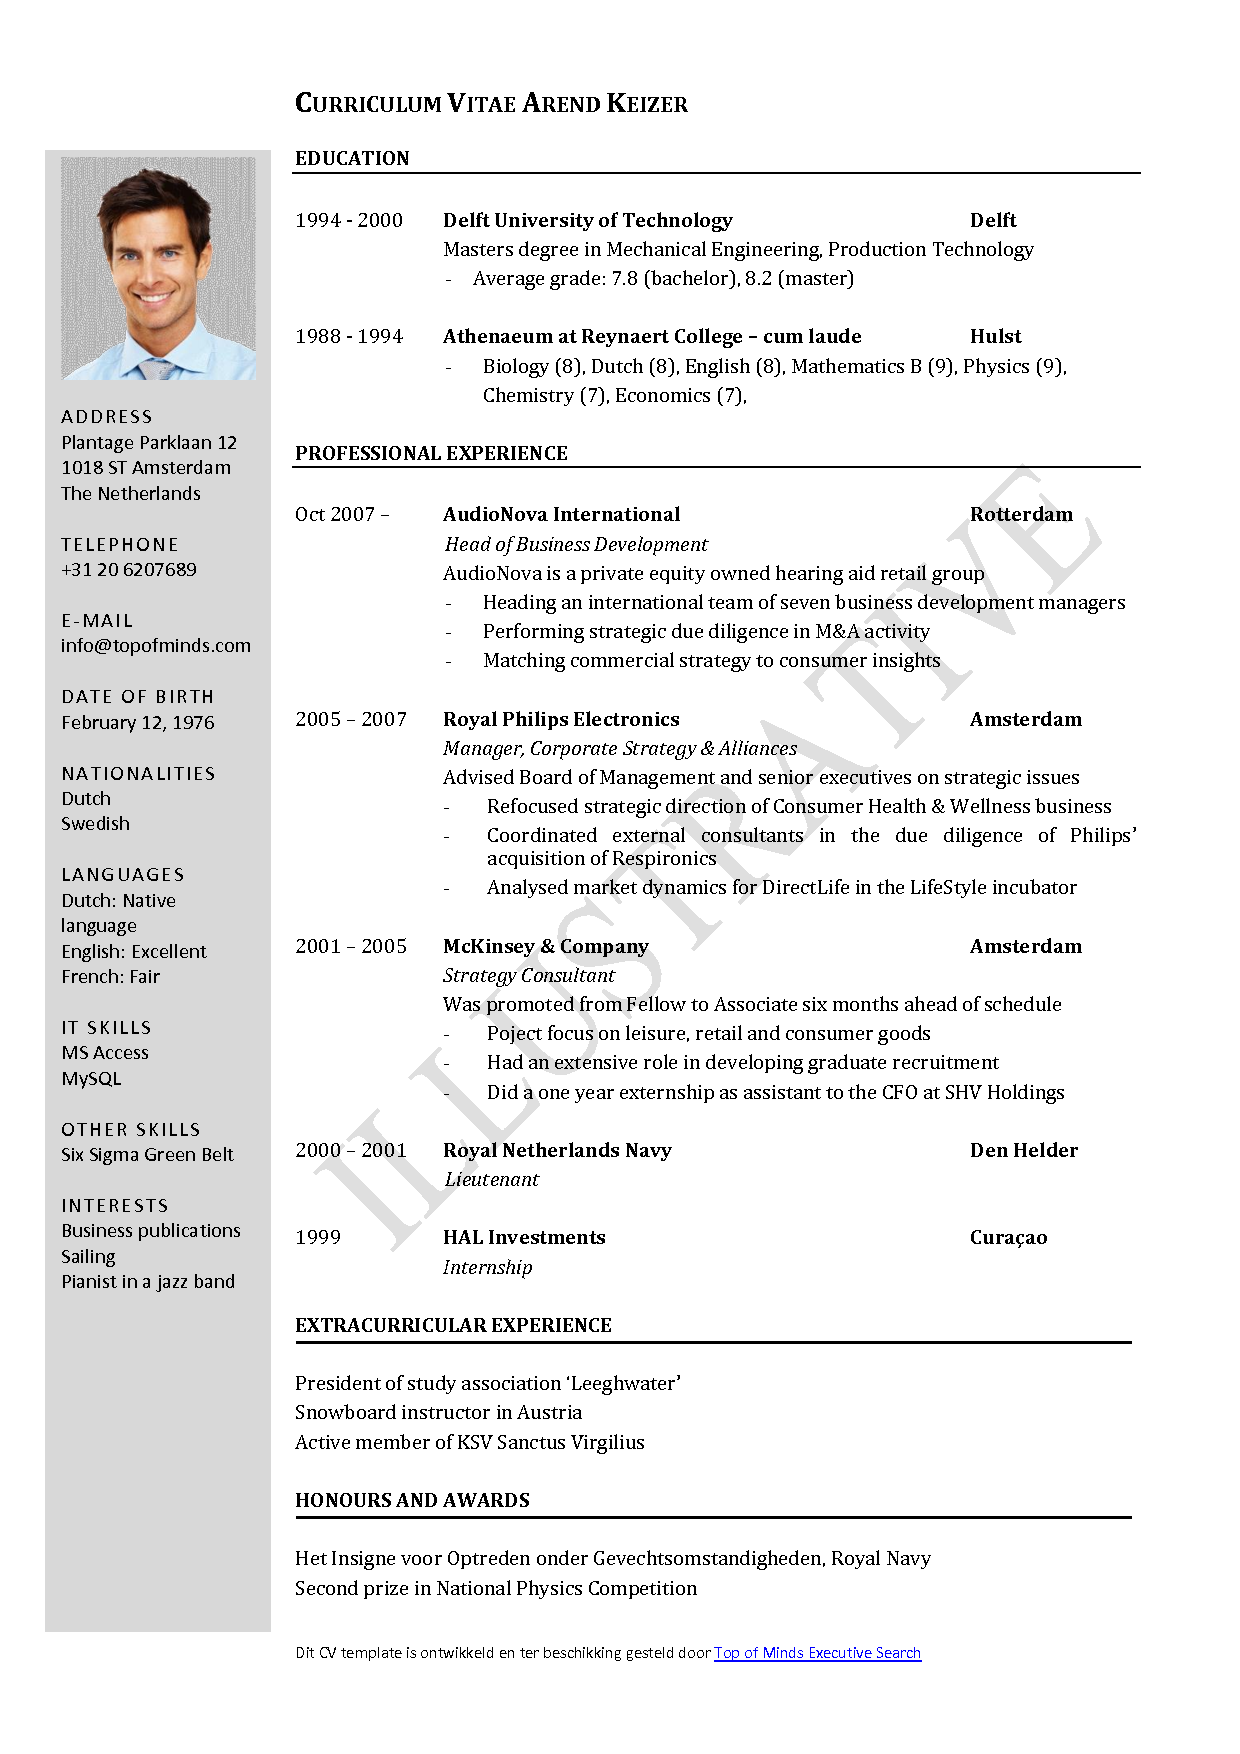 Wonderful Free Curriculum Vitae Template Word | Download CV Template